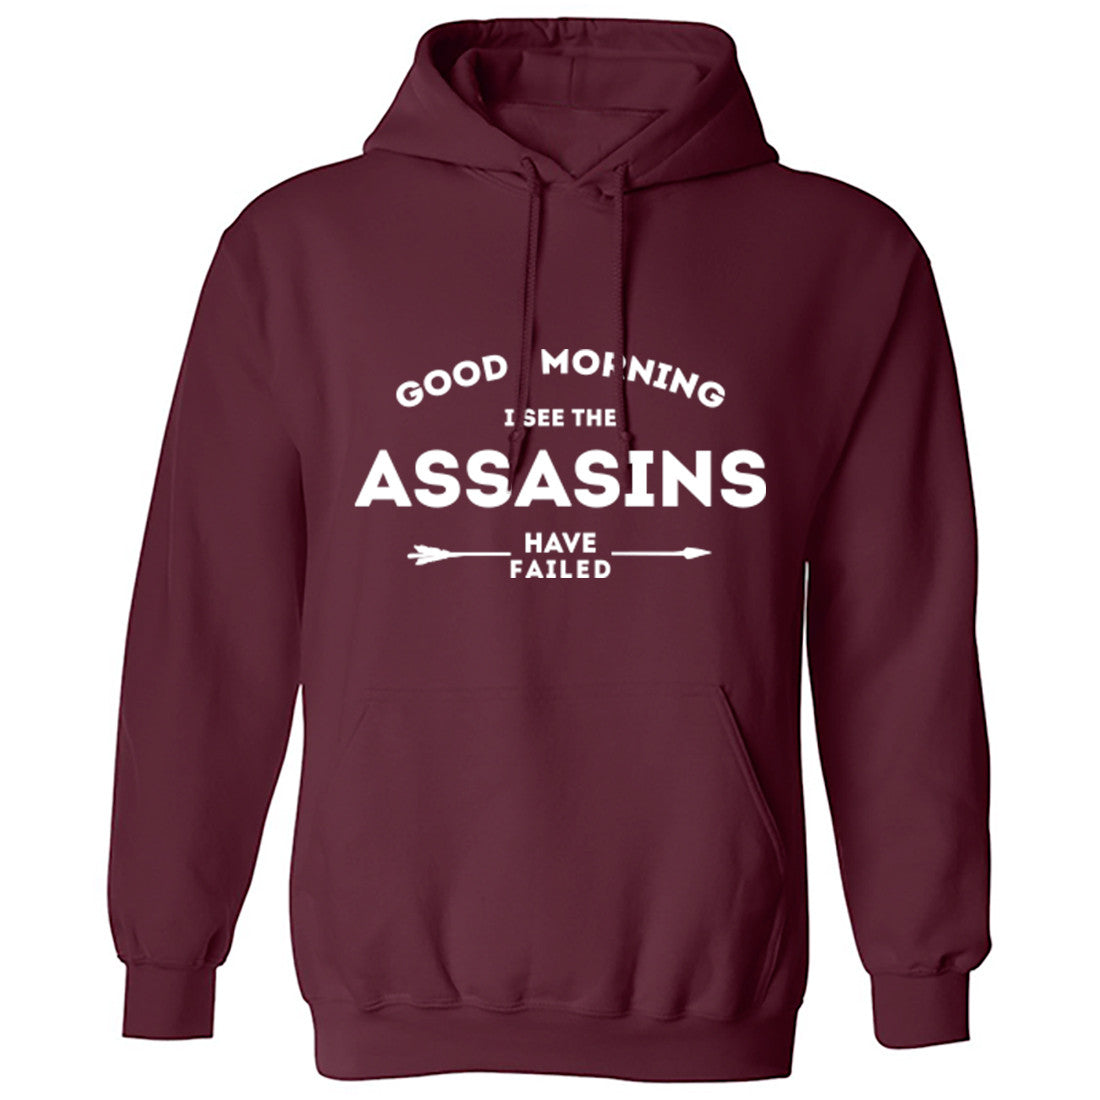 Good Morning I See The Assassins Have Failed Unisex Hoodie K0426 - Illustrated Identity Ltd.